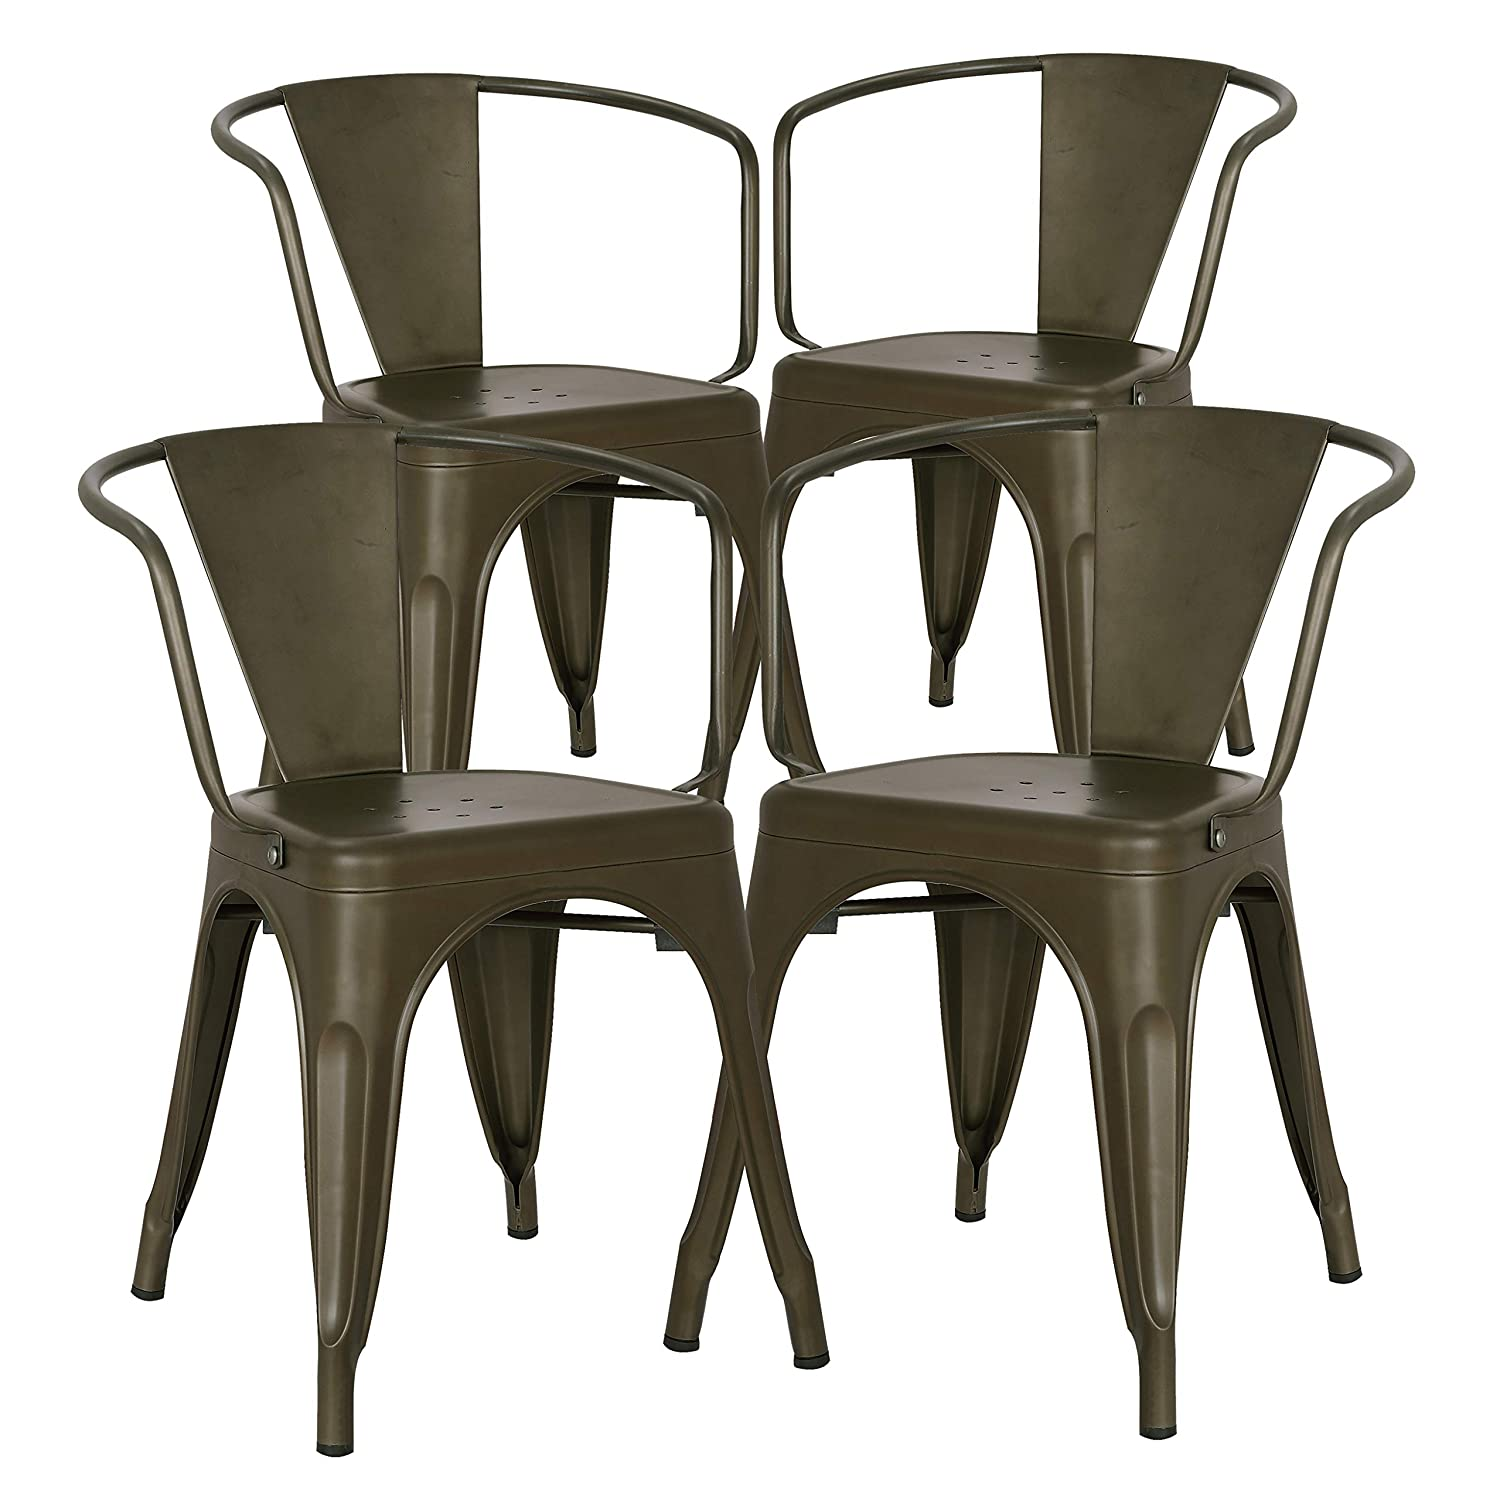 Poly and Bark Trattoria Modern Mid-Century Dining Kitchen Metal Side Arm Chair in Bronze Set of 4